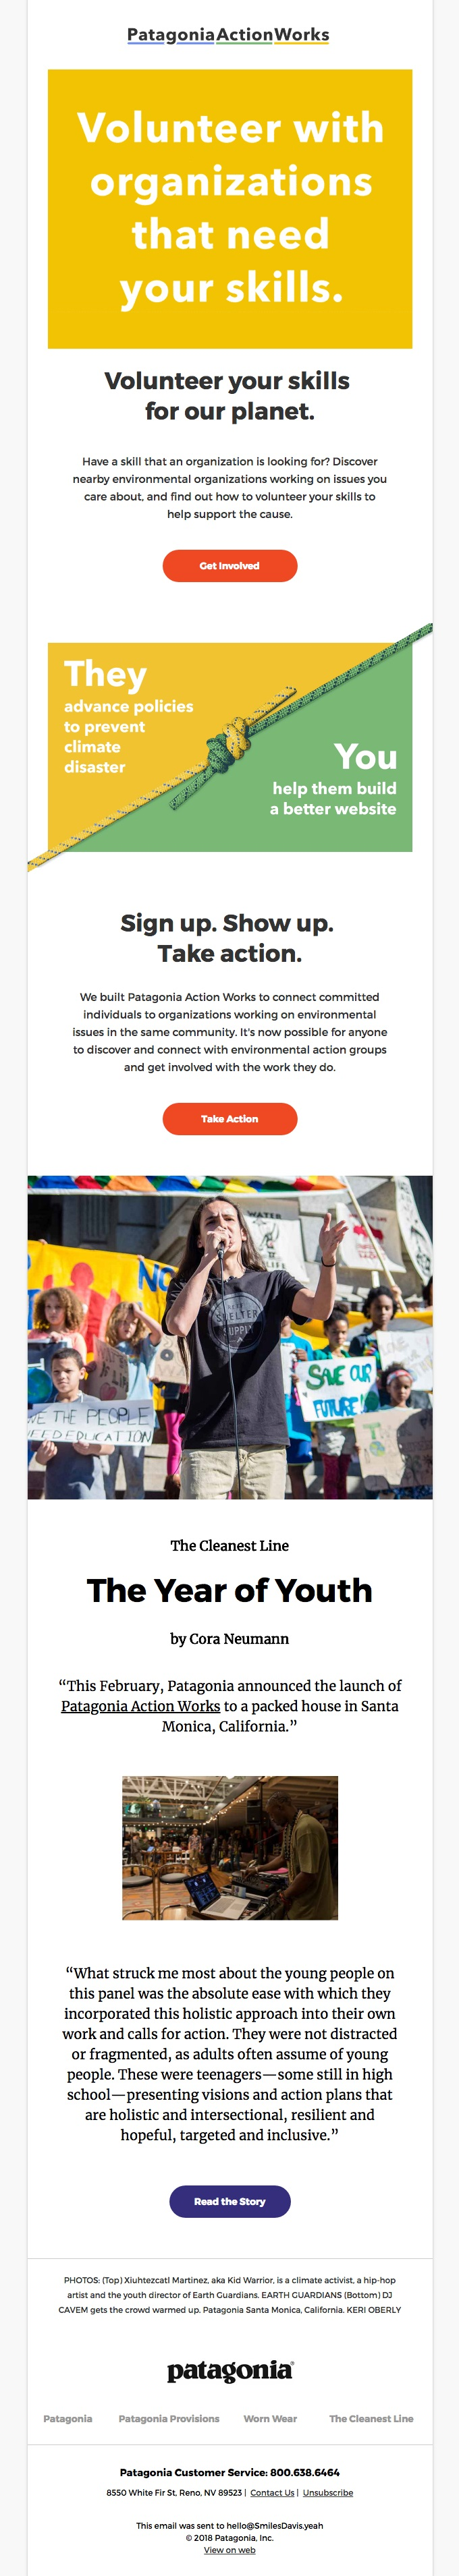 Patagonia carefully designed their email to include not only compelling copywriting and imagery, but also to include multiple CTAs, all without looking messy and uncoordinated.